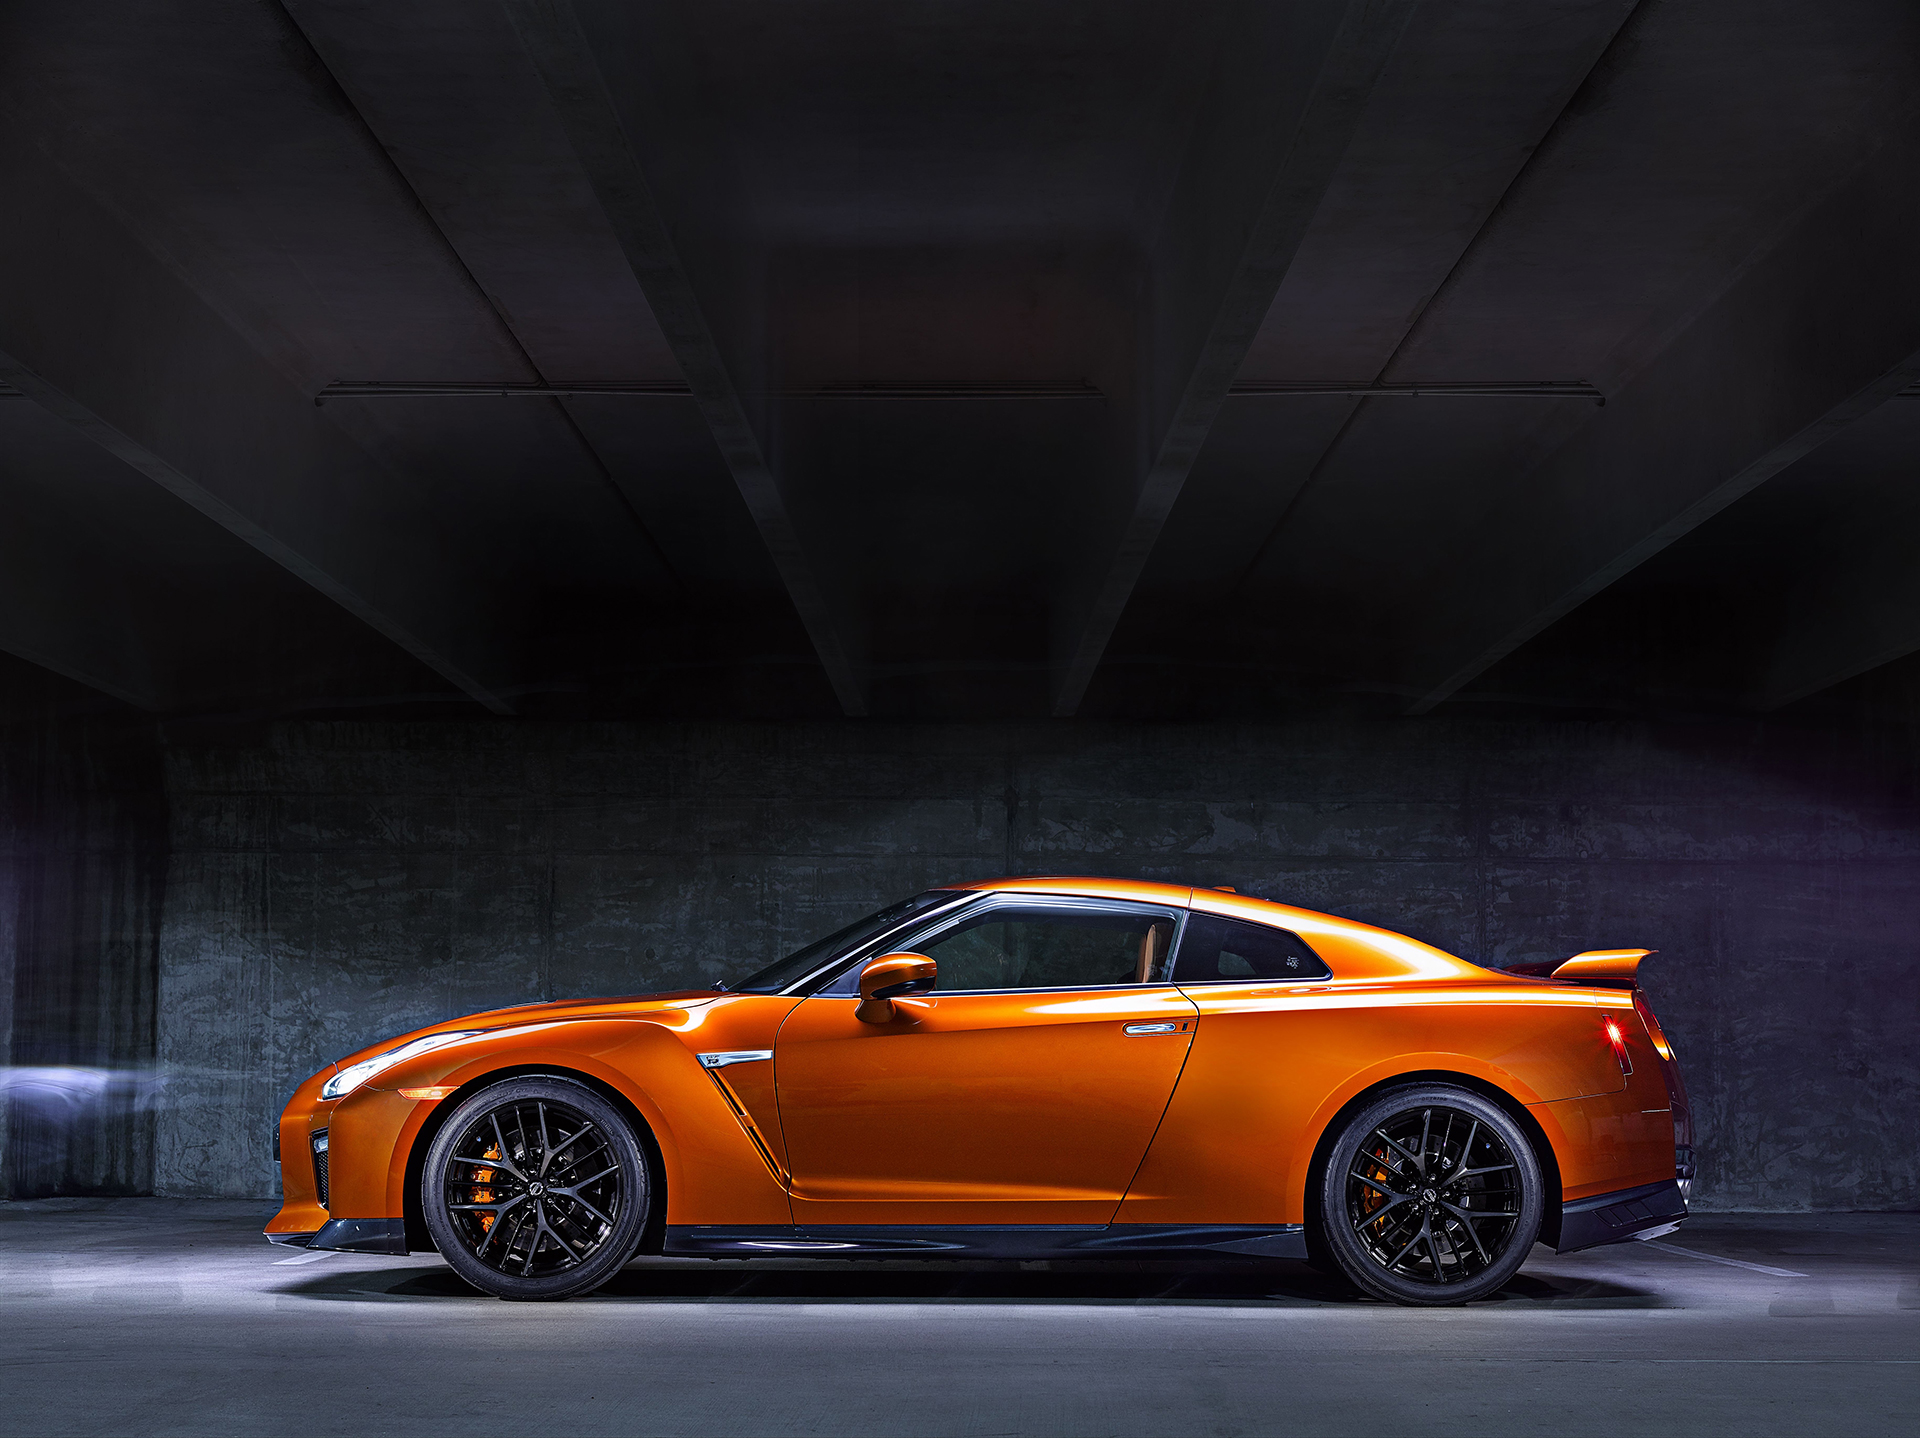 Nissan GT-R - 2017 - side-face / profil